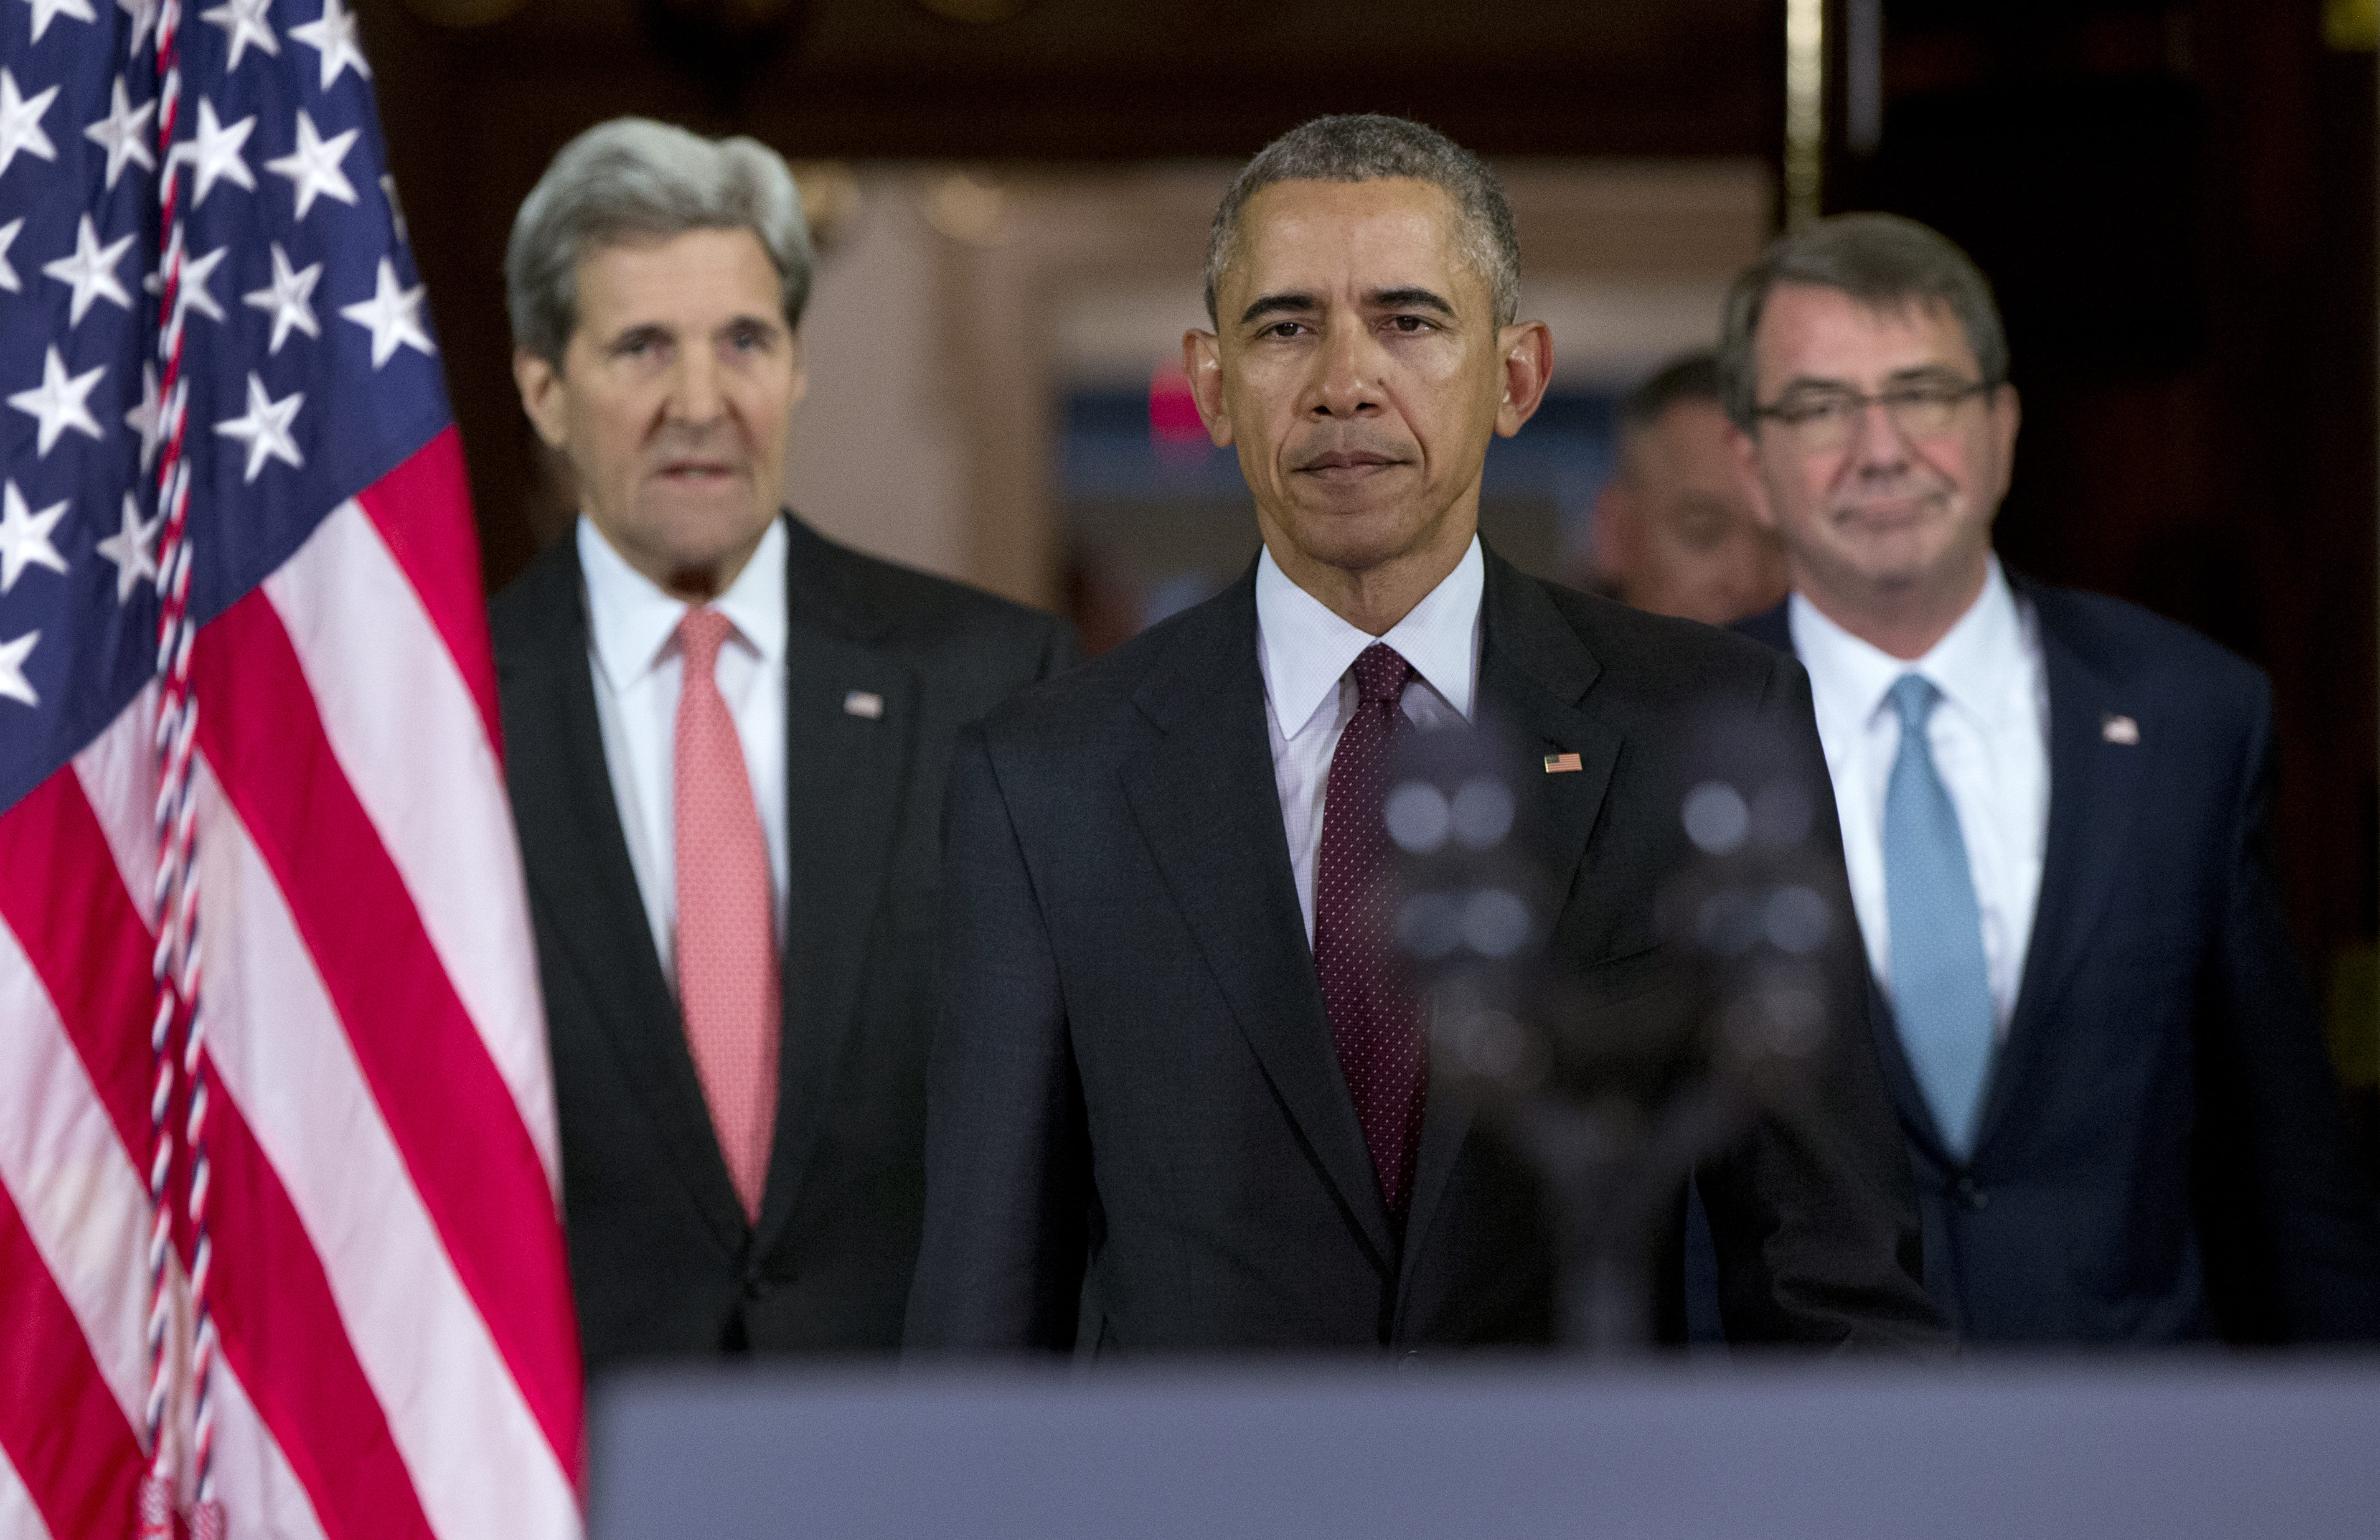 President Barack Obama, center, followed by Secretary of State John Kerry, left, and Defense Secretary Ash Carter right, walks to a podium to speak to media after a meeting of his National Security Council (NSC) at the State Department in Washington,...